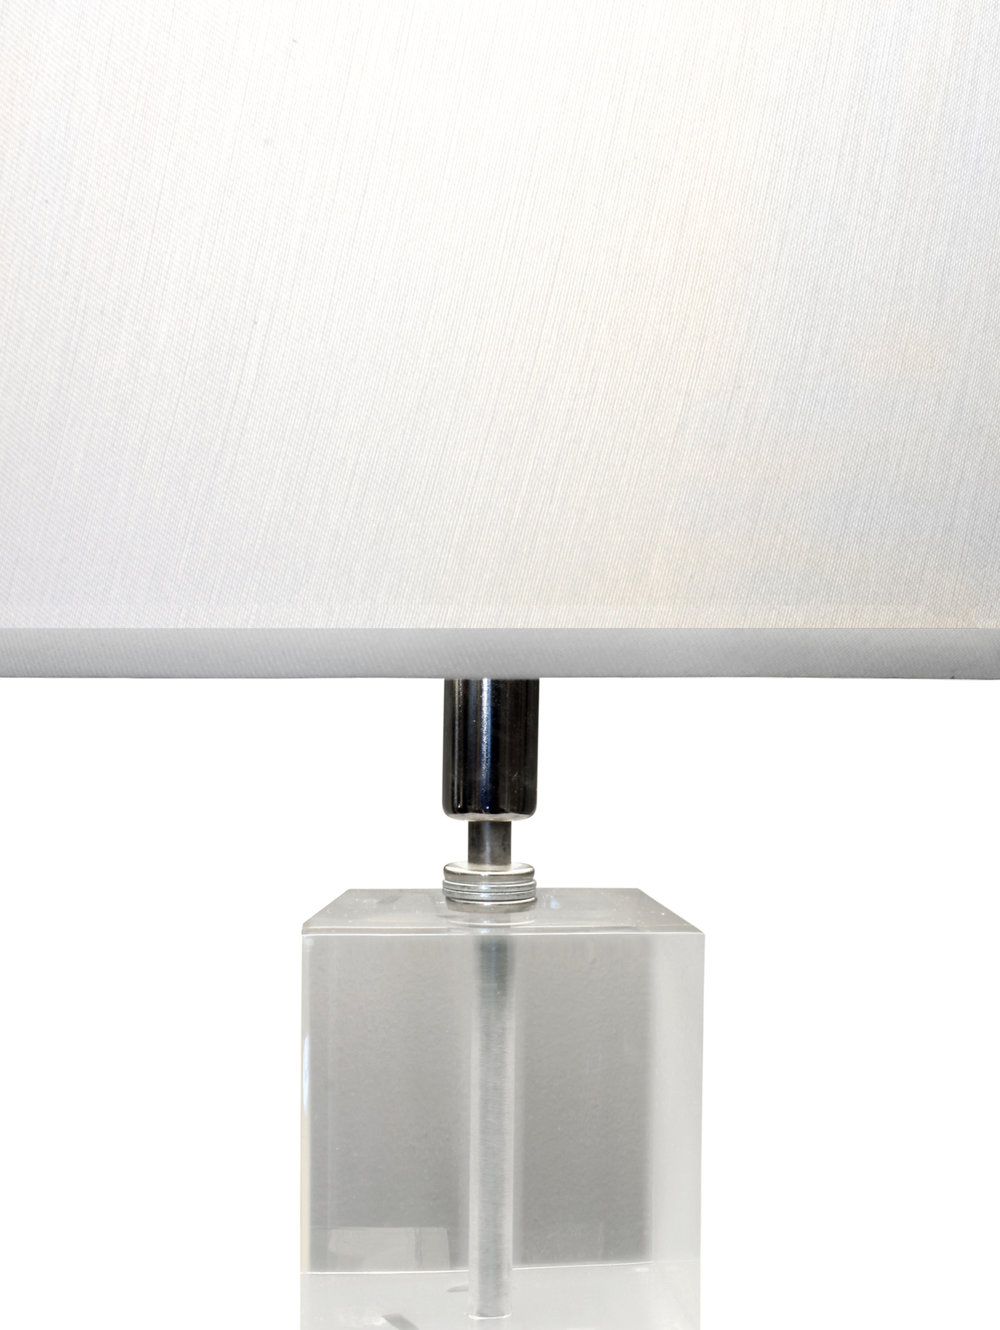 Prismatiques 35 lrg sculpt tablelamp top dtl tablelamp139.jpg